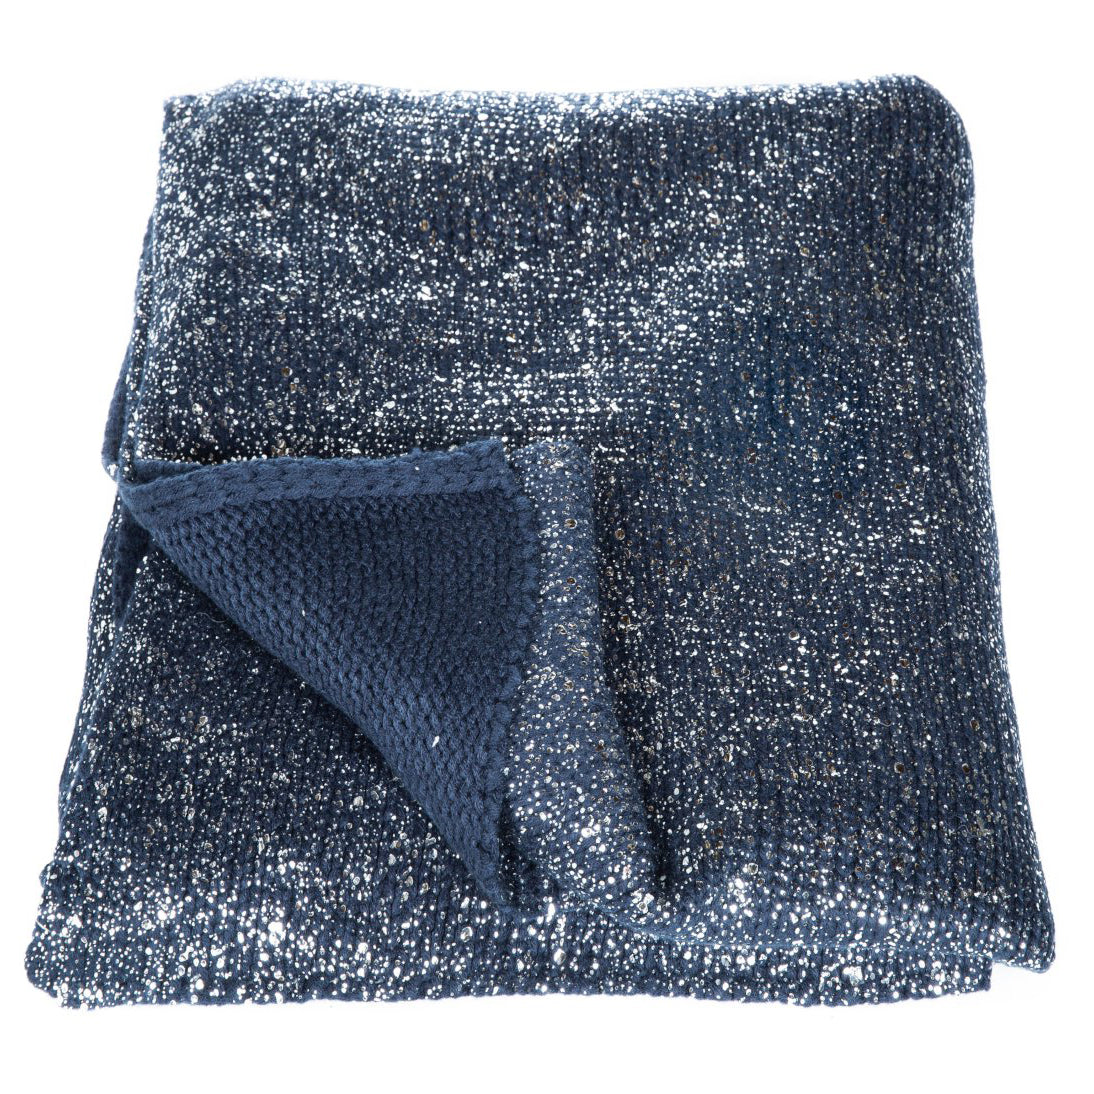 Constellation Knit Navy/Silver Throw